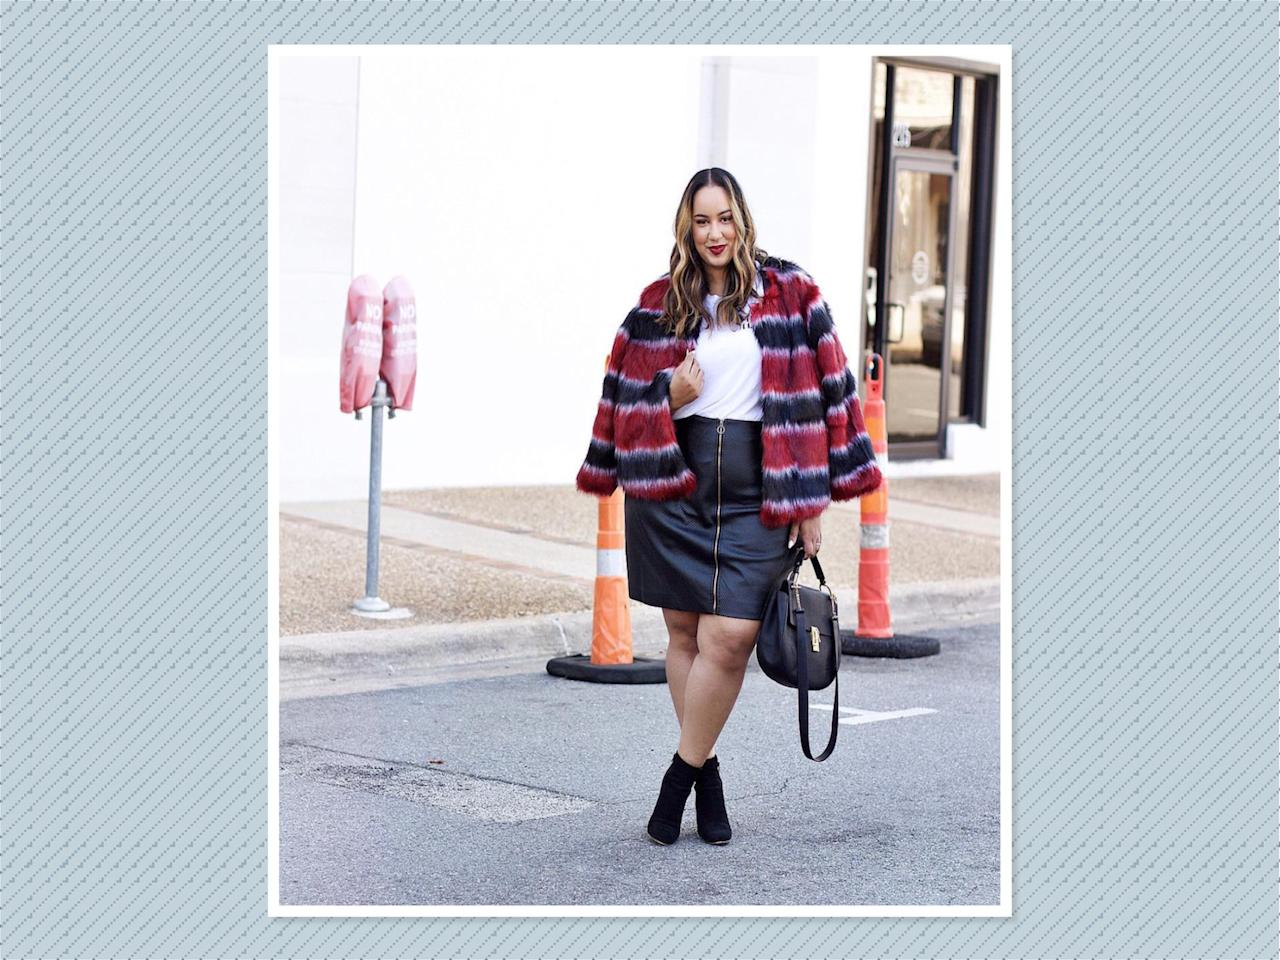 "<p>Try out a color-block fur — like this one worn by <a rel=""nofollow"" href=""https://www.instagram.com/p/BZuBFT-lWLe/?hl=en&taken-by=iambeauticurve"">Rochelle Johnson</a> — and pair it with everything from skinny jeans and booties to a miniskirt combo. (Photo: Rochelle Johnson) </p>"